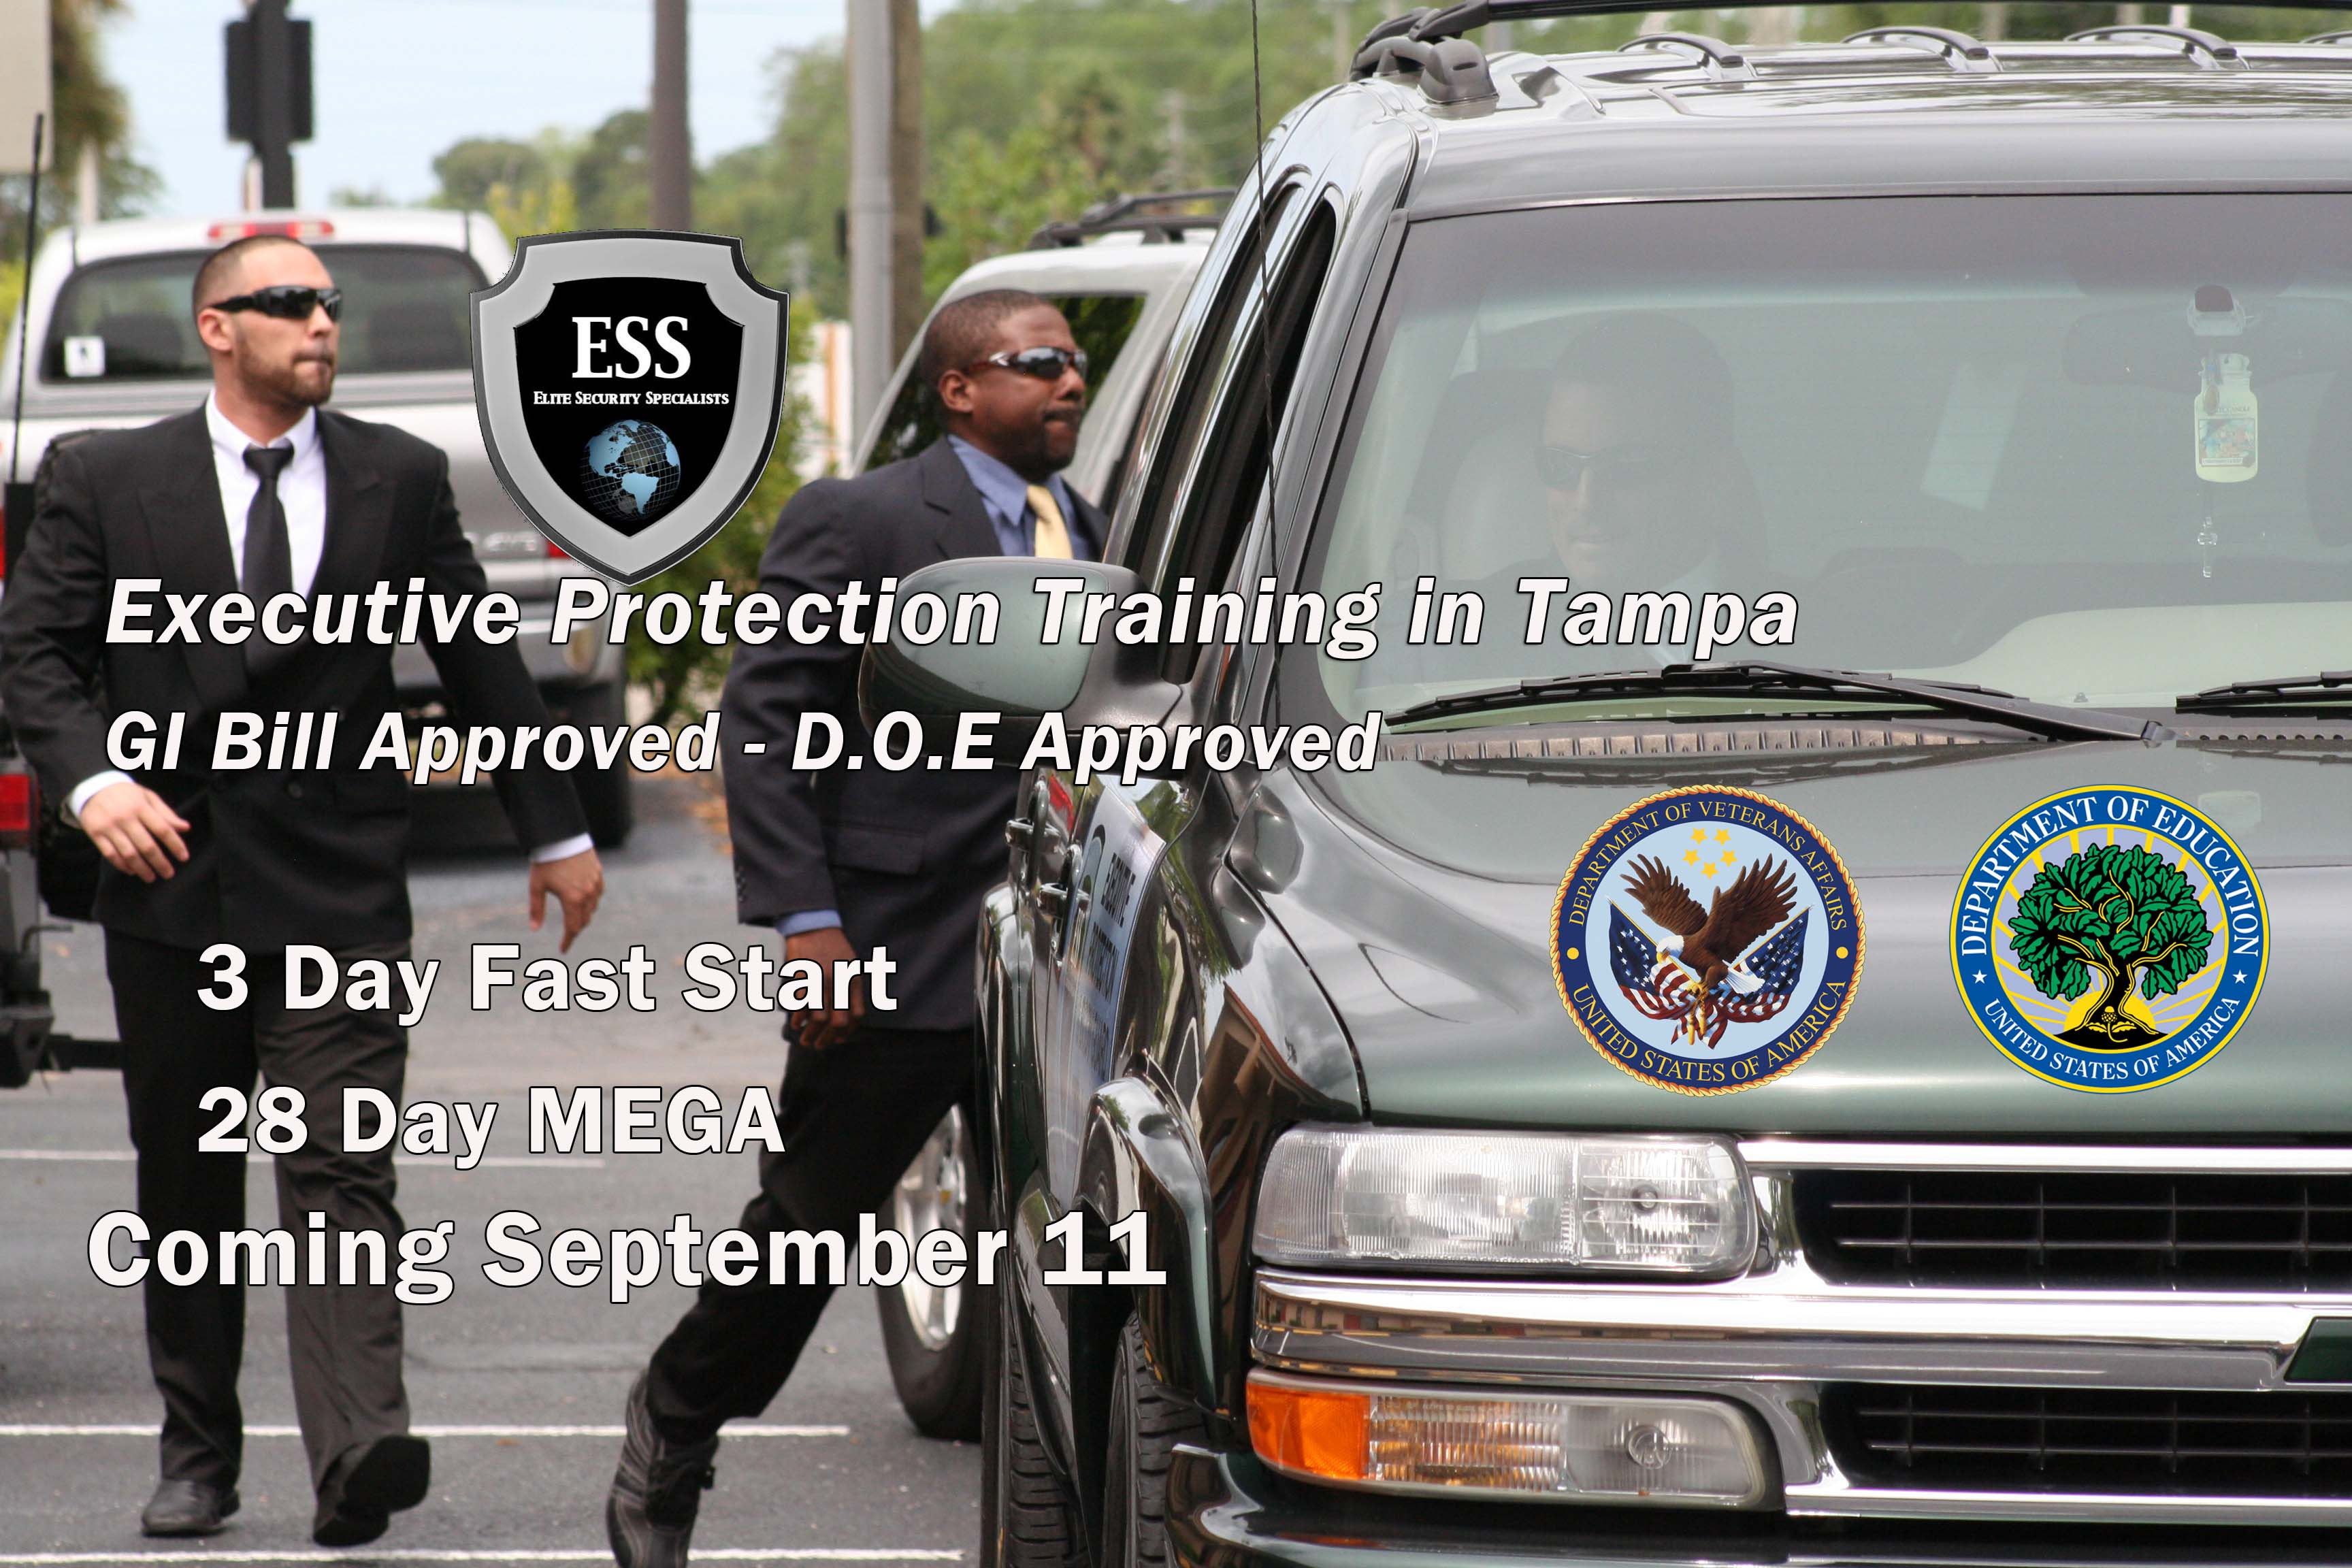 Executive Protection Courses in Florida - September 11